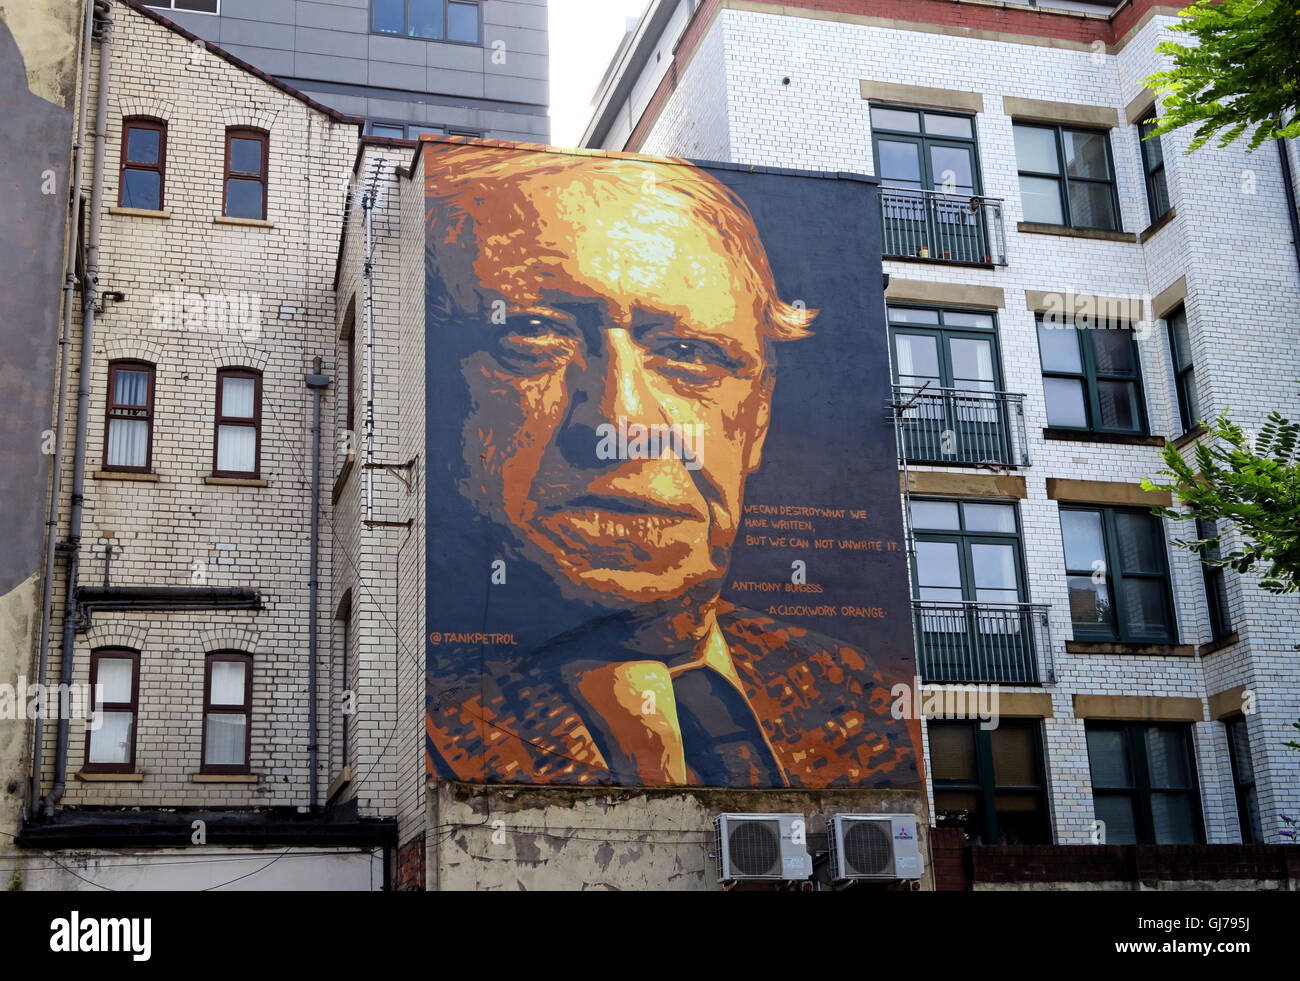 Author Anthony Burgess mural art work, Northern Quarter, Brightwell walk, Manchester M4 5JD - Stock Image